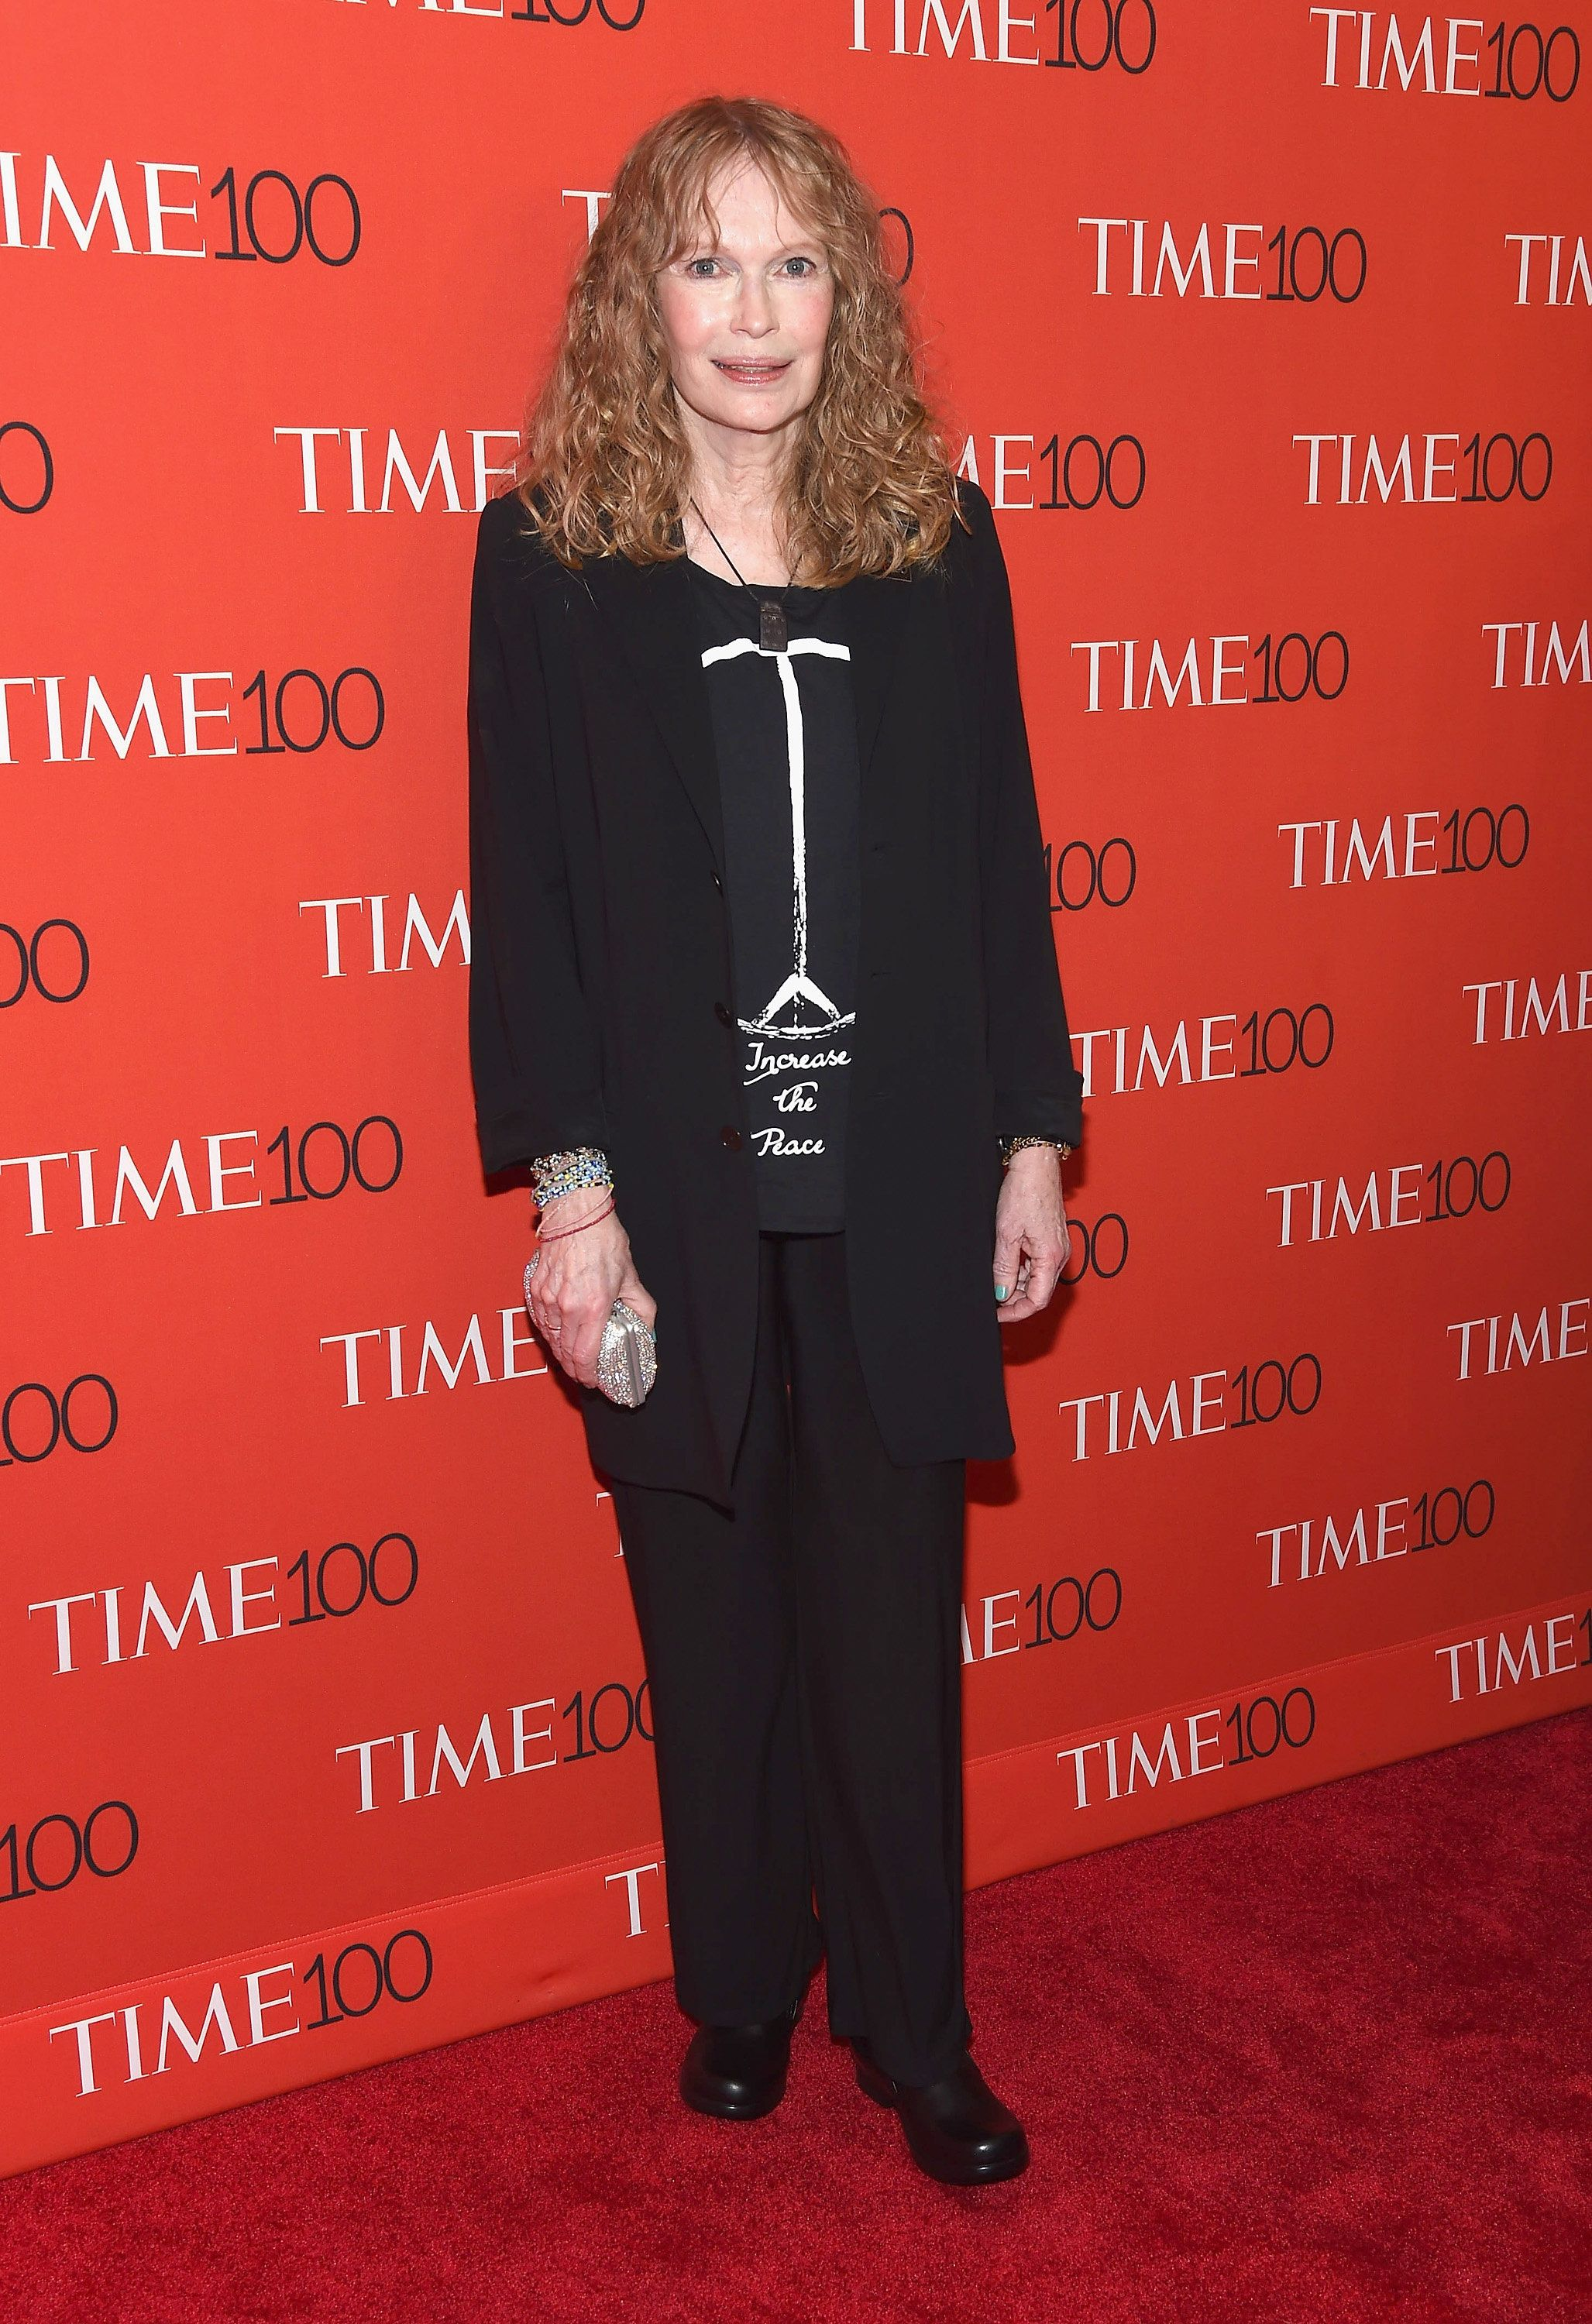 NEW YORK, NY - APRIL 21:  Actress Mia Farrow attends TIME 100 Gala, TIME's 100 Most Influential People In The World at Frederick P. Rose Hall, Jazz at Lincoln Center on April 21, 2015 in New York City.  (Photo by Gary Gershoff/WireImage)